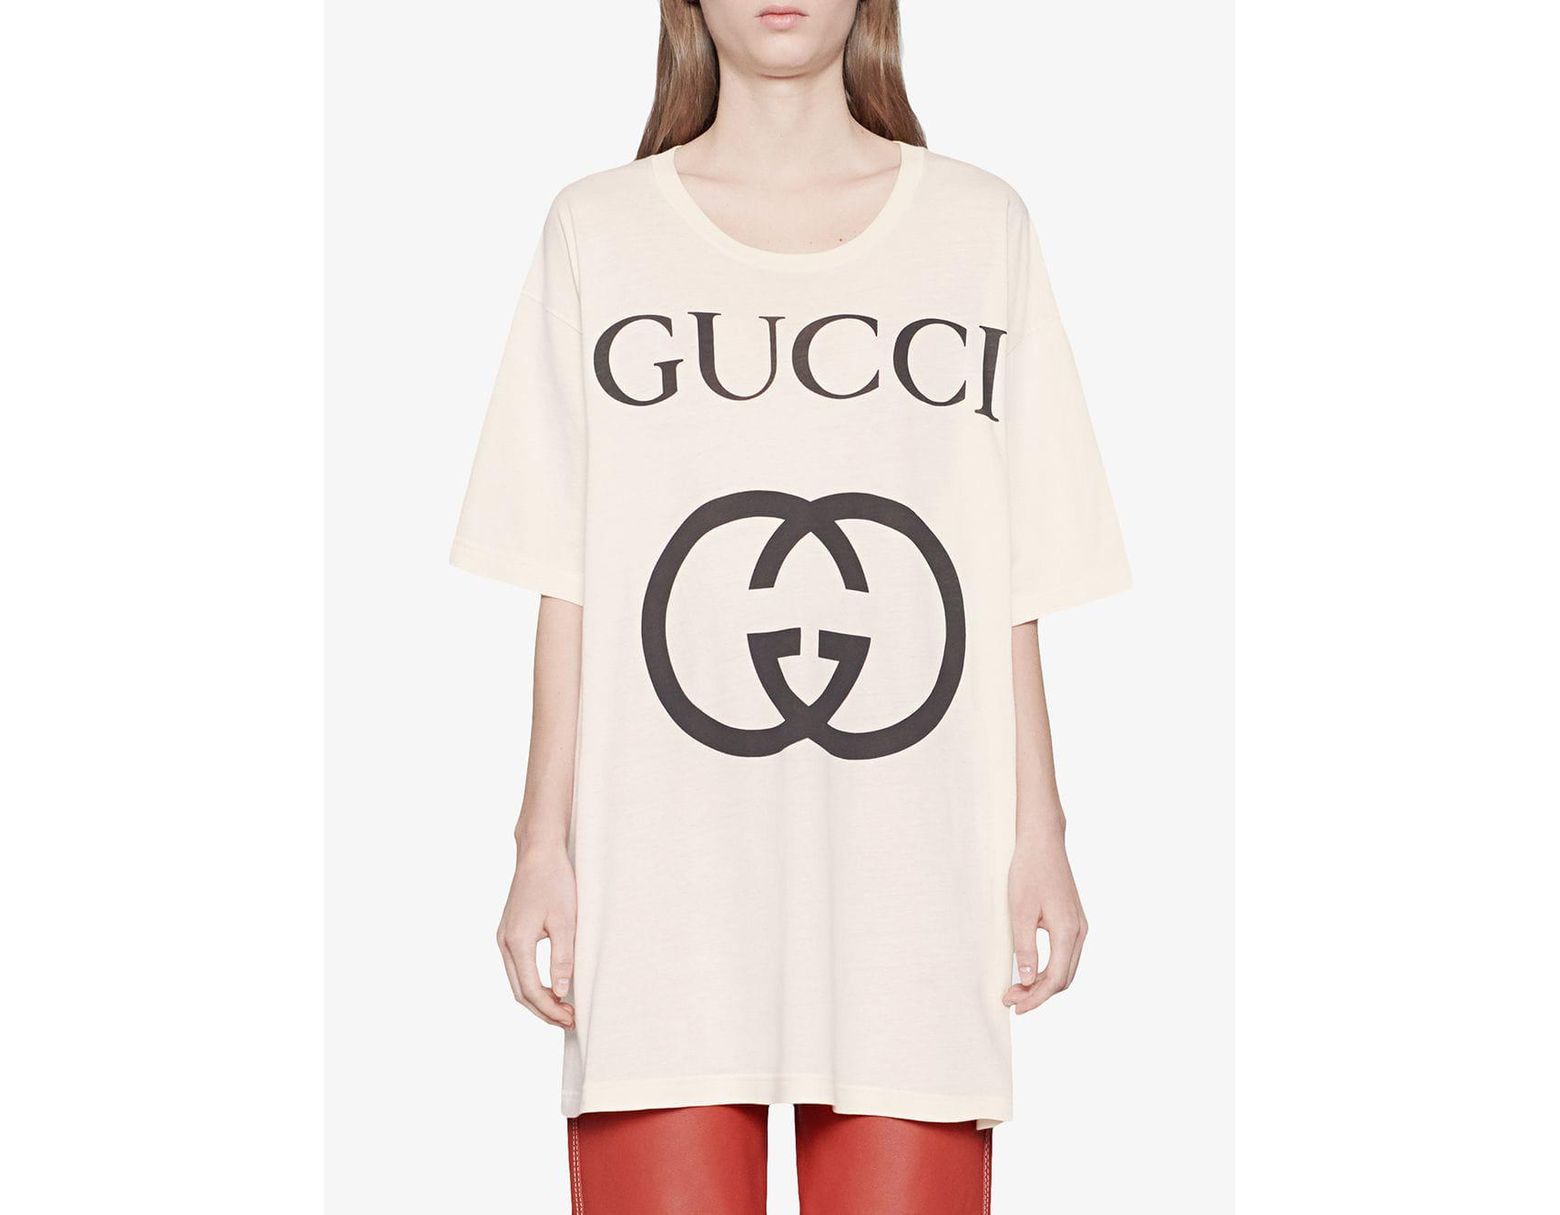 52d217aca Gucci Oversize T-shirt With Interlocking G in White - Save 33% - Lyst